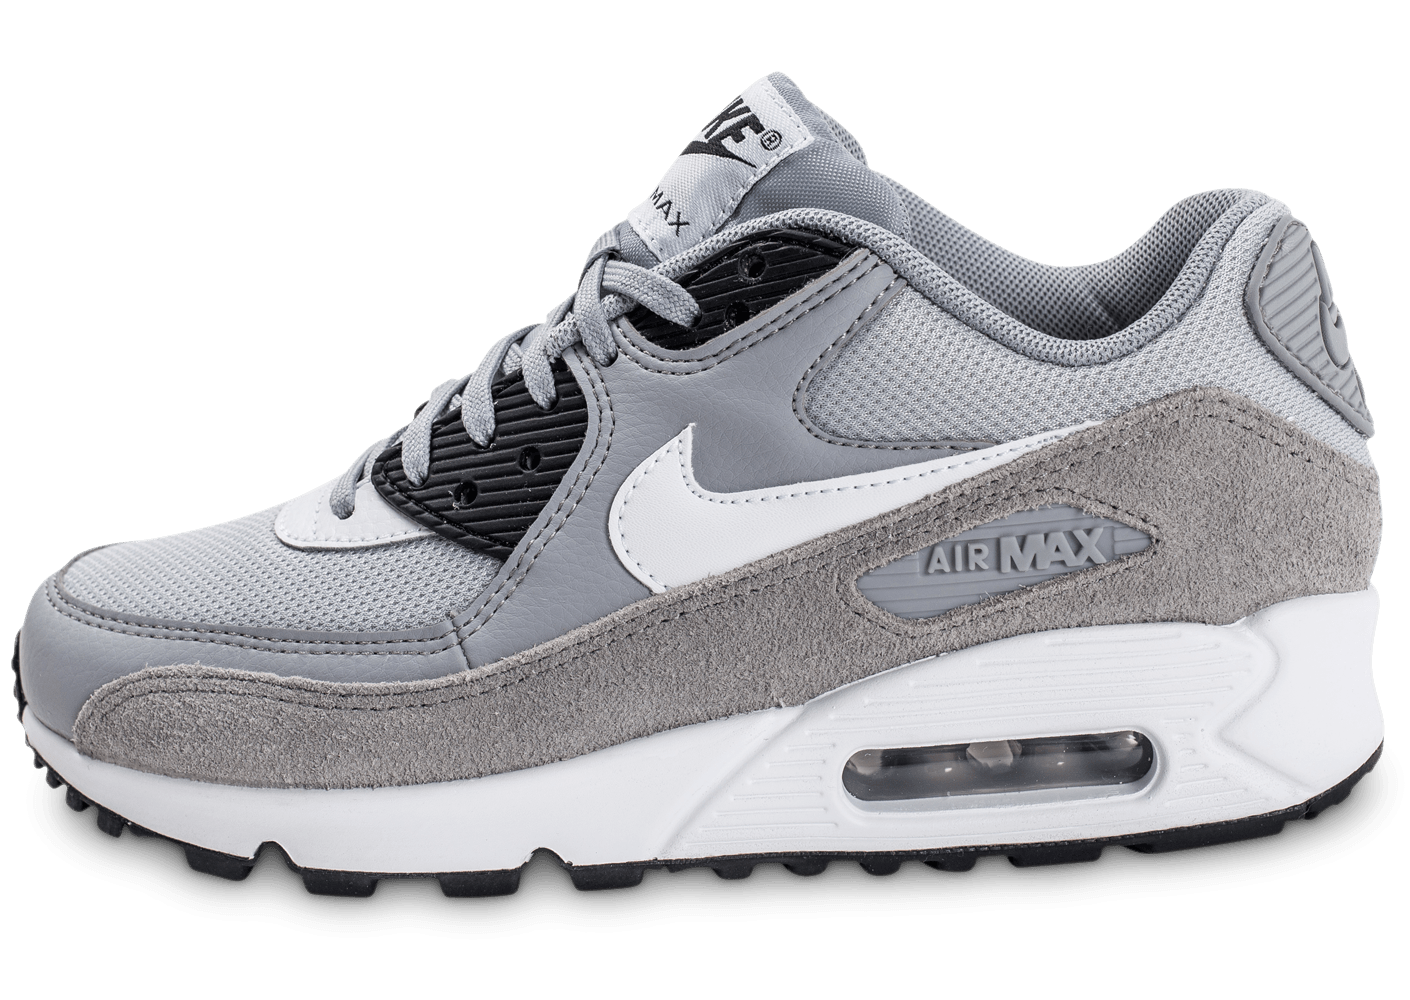 huge selection of 57b25 91f19 discount code for nike air max 90 w grise chaussures baskets femme  chausport ca601 5c121